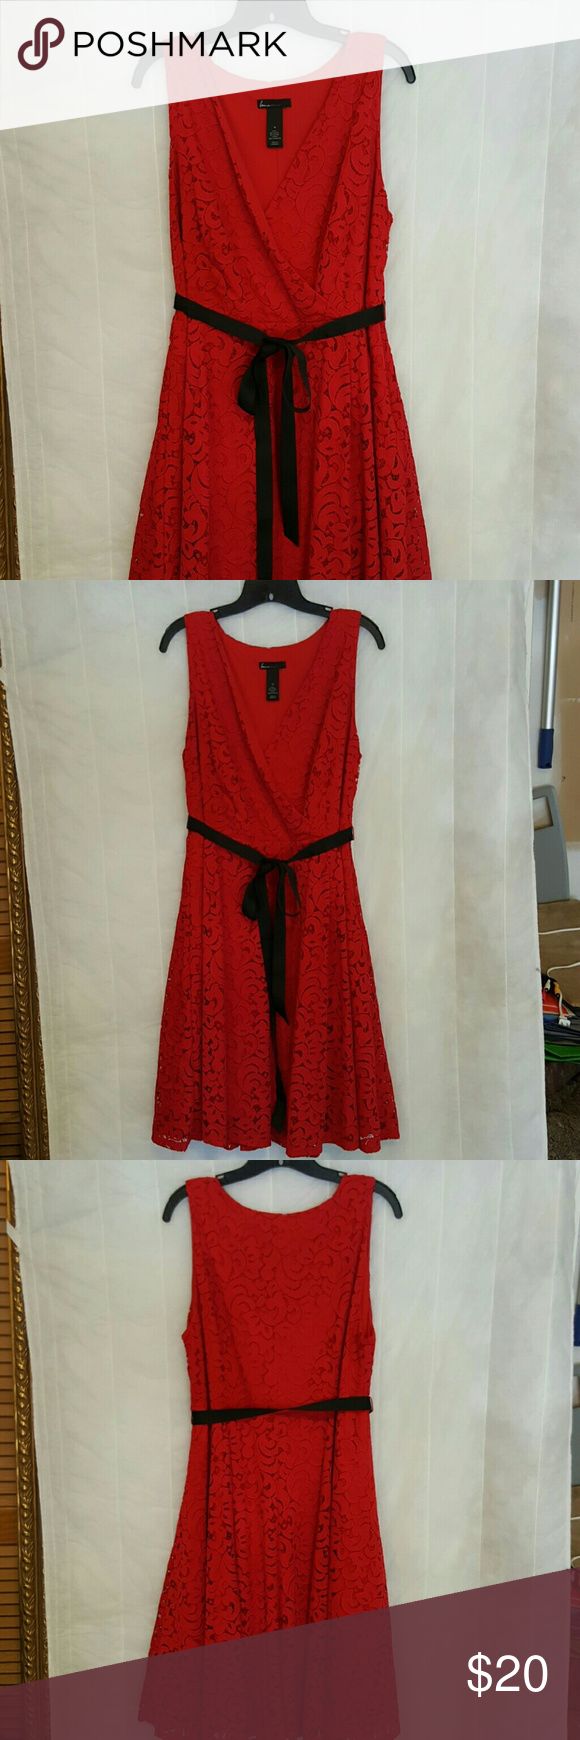 Lane bryant red lace dress land bryant dress red lace over